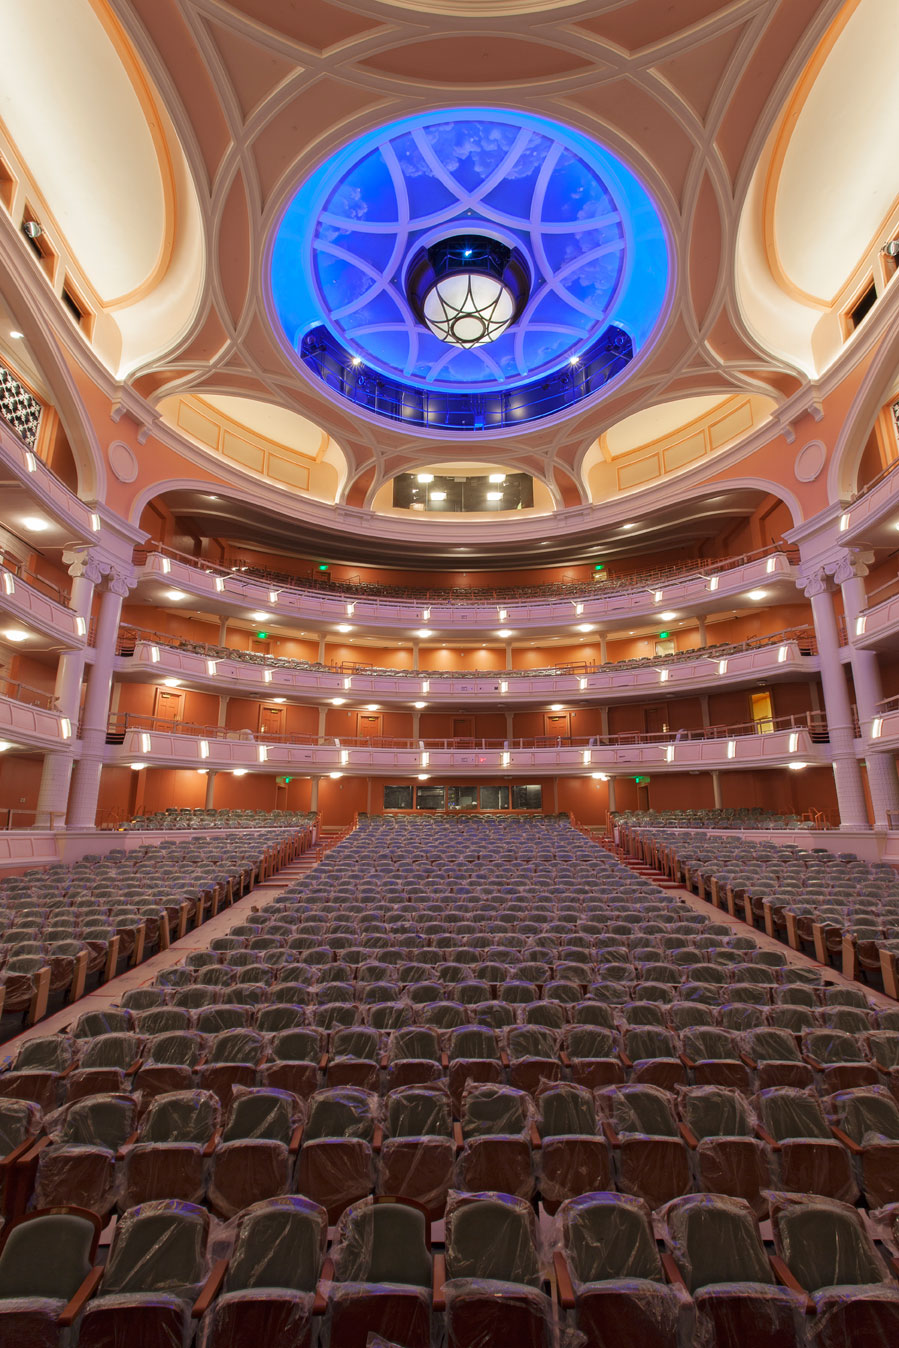 The neoclassical Gaillard Center and its centerpiece Performance Hall are modeled after the great European concert halls, with an orchestra level surrounded by three balcony tiers.